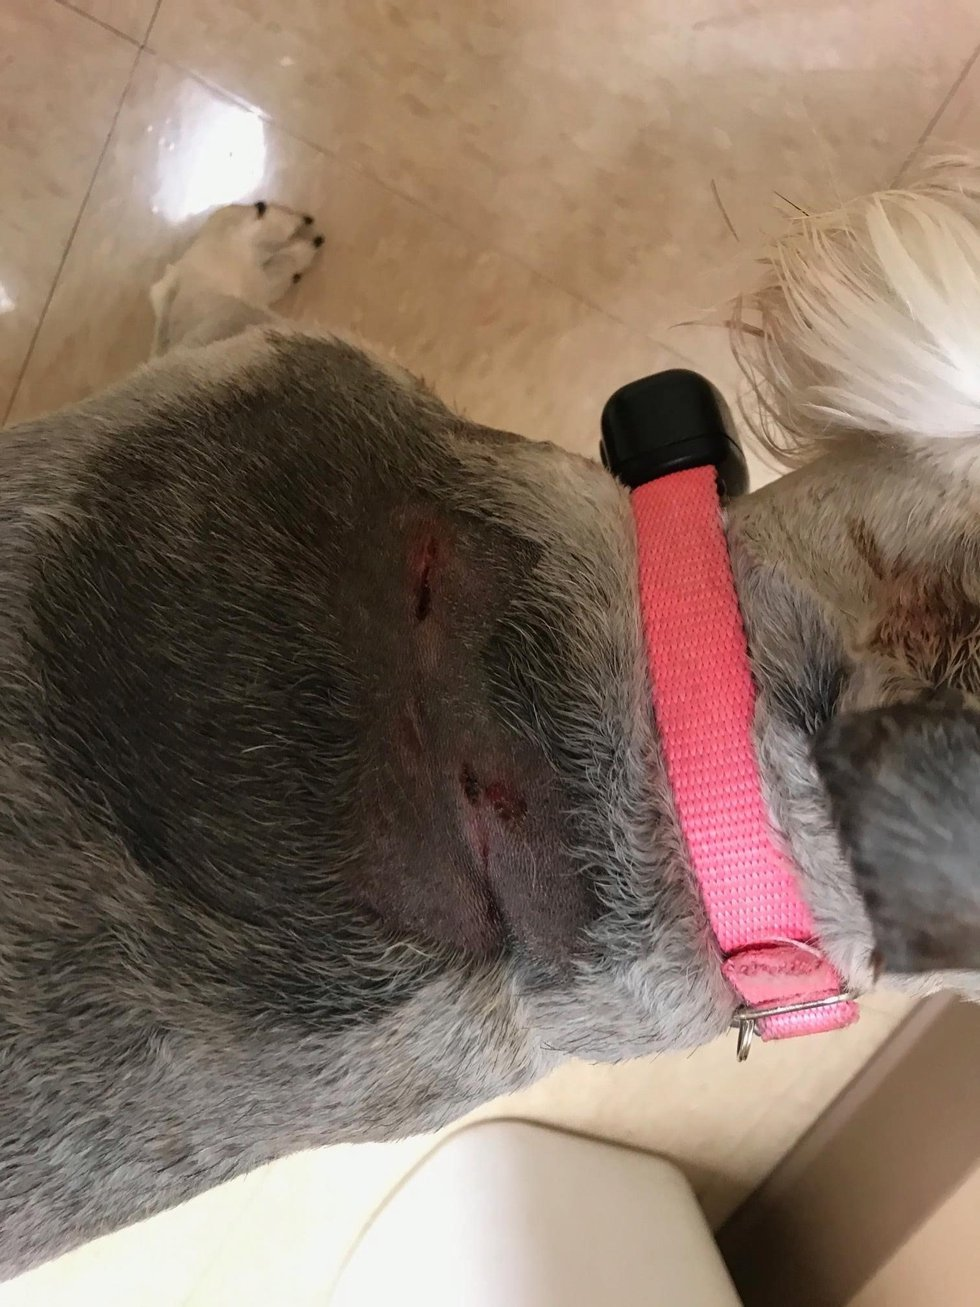 Dog, lucky to be alive after a trio of coyotes attack